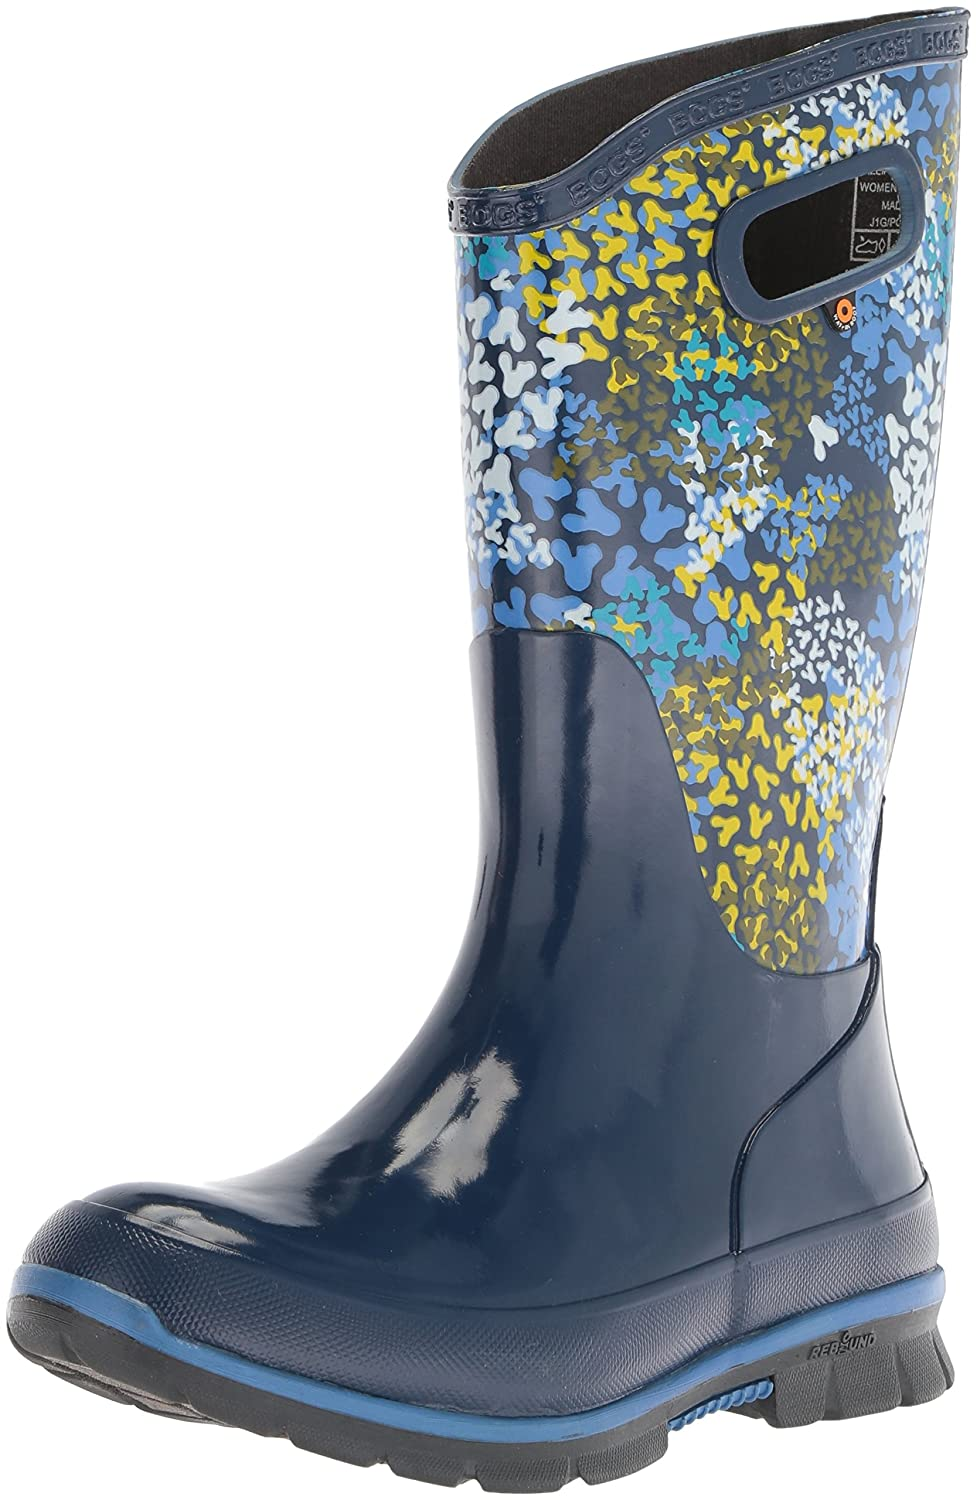 Bogs Women's Berkley Footprints Rain Boot B073PHZ8P8 6 B(M) US|Blue/Multi